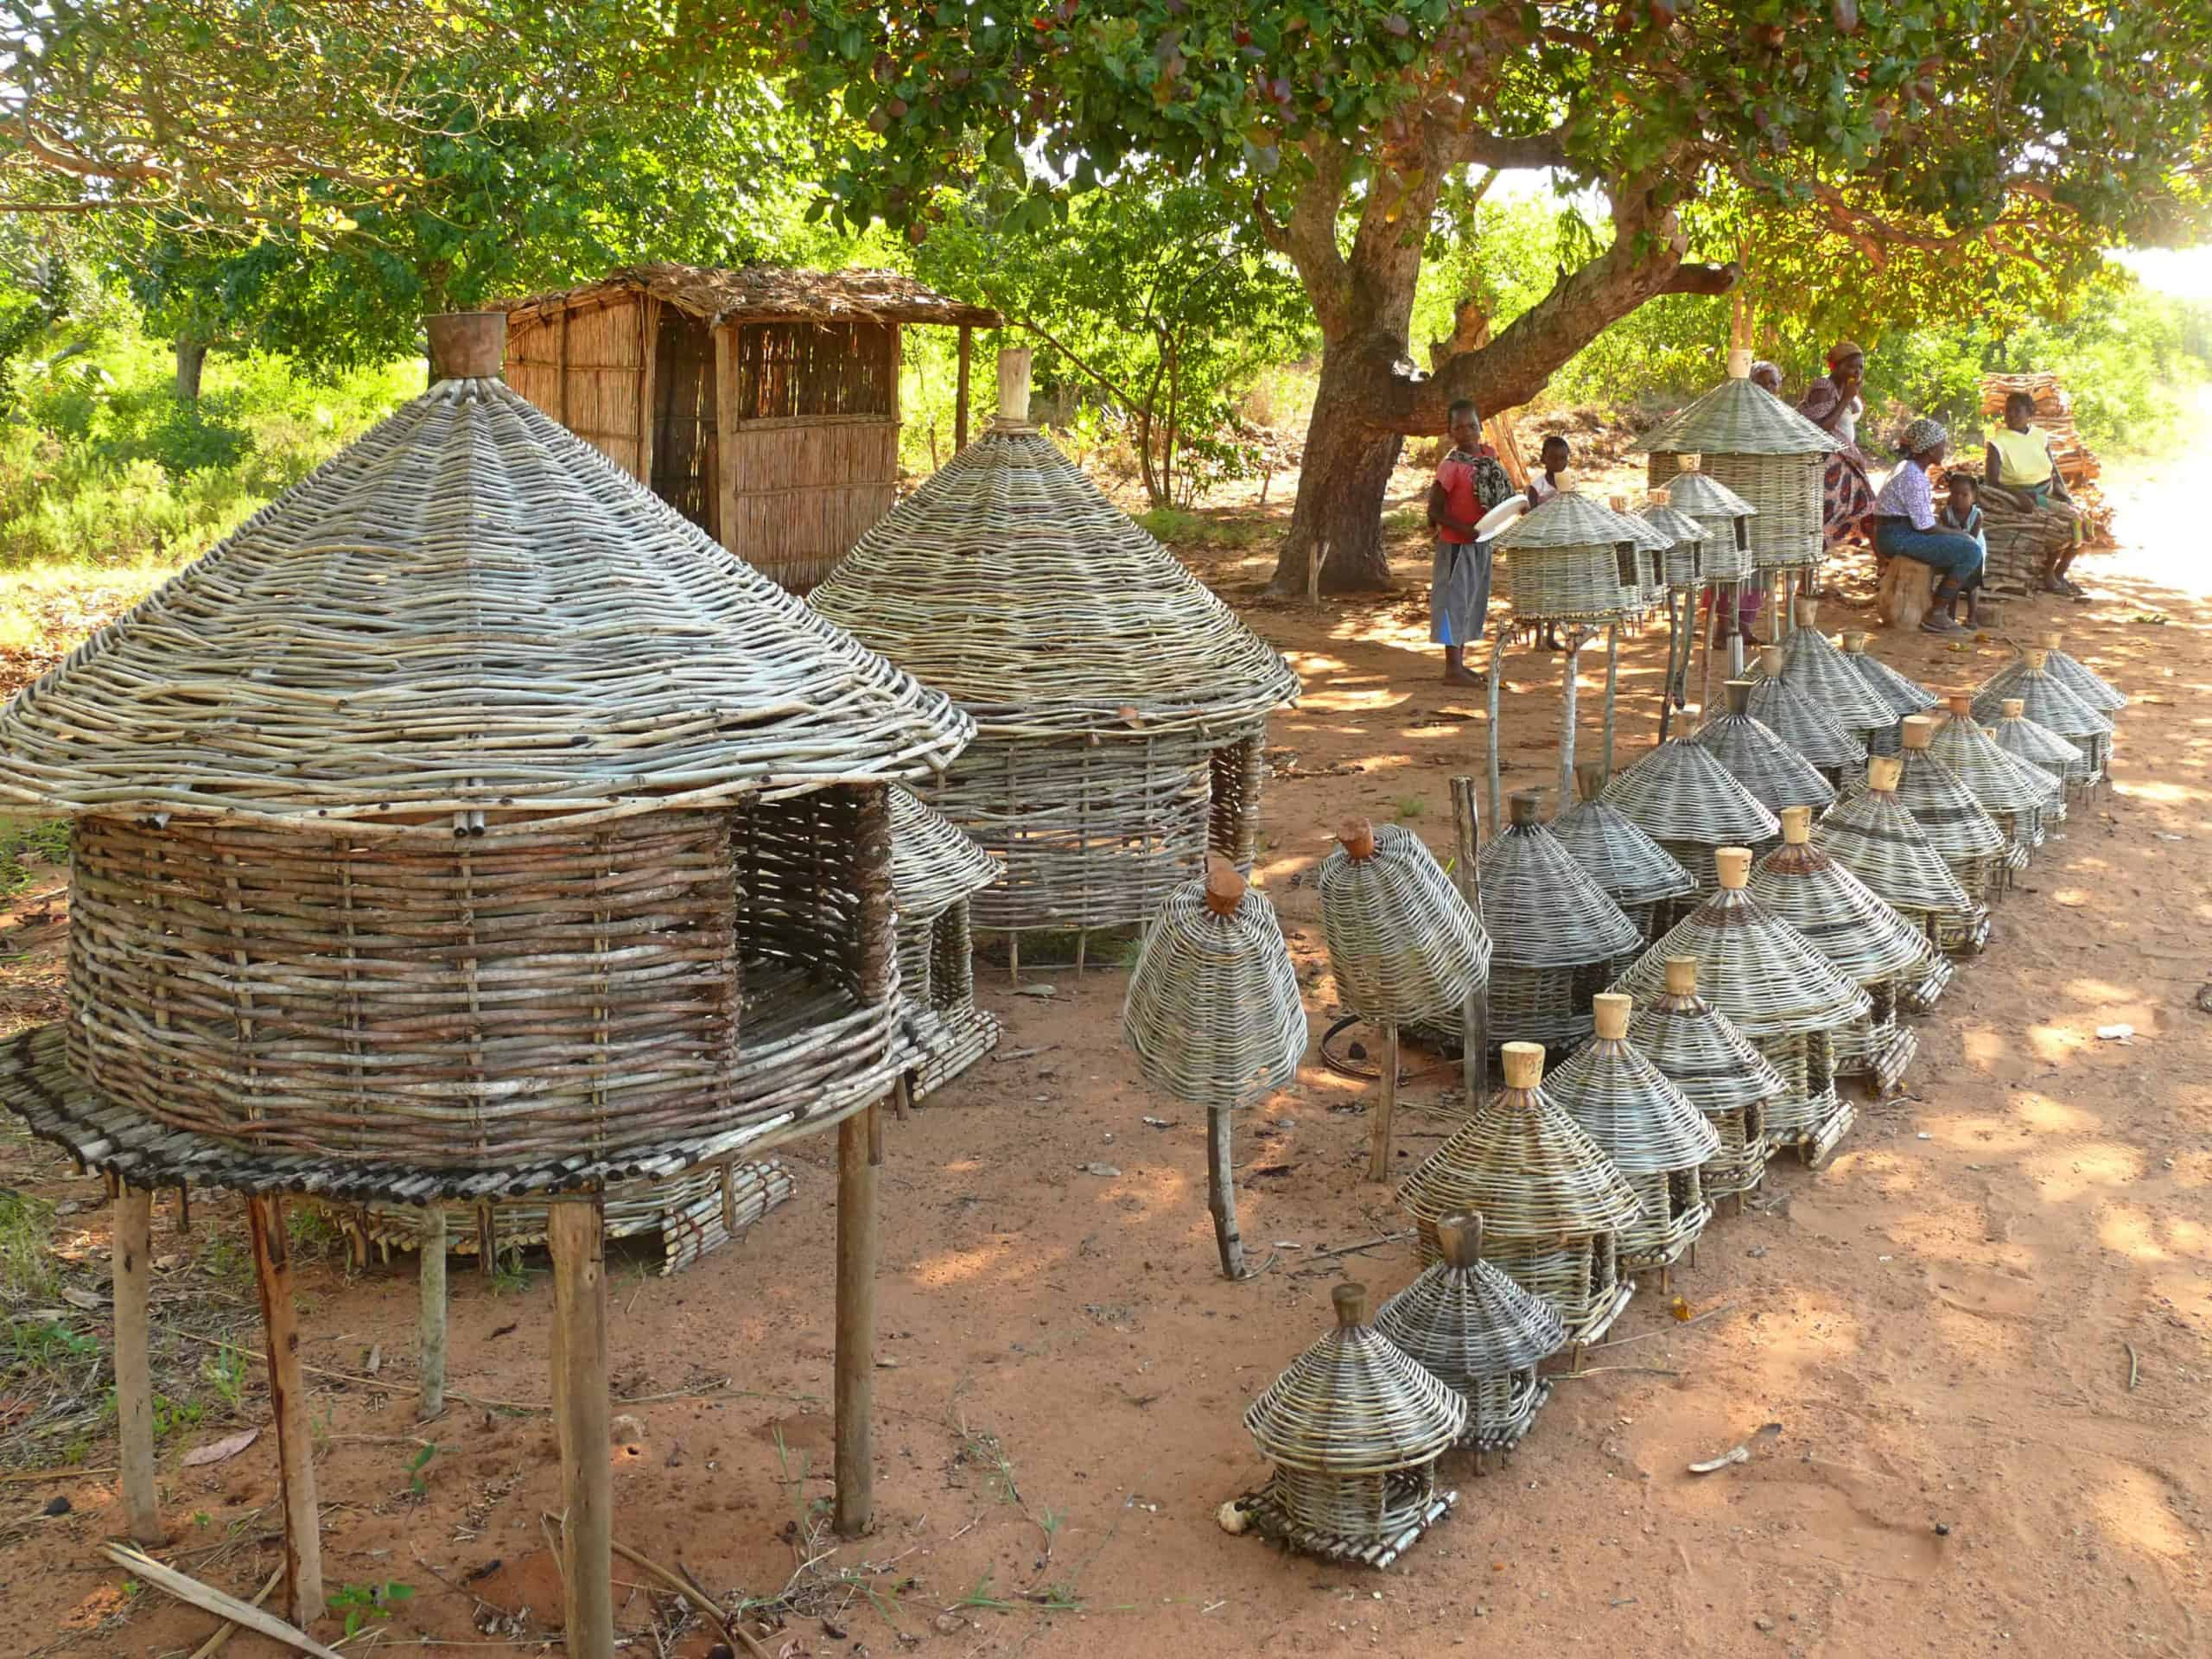 Houses made of sand and straw in Togoville